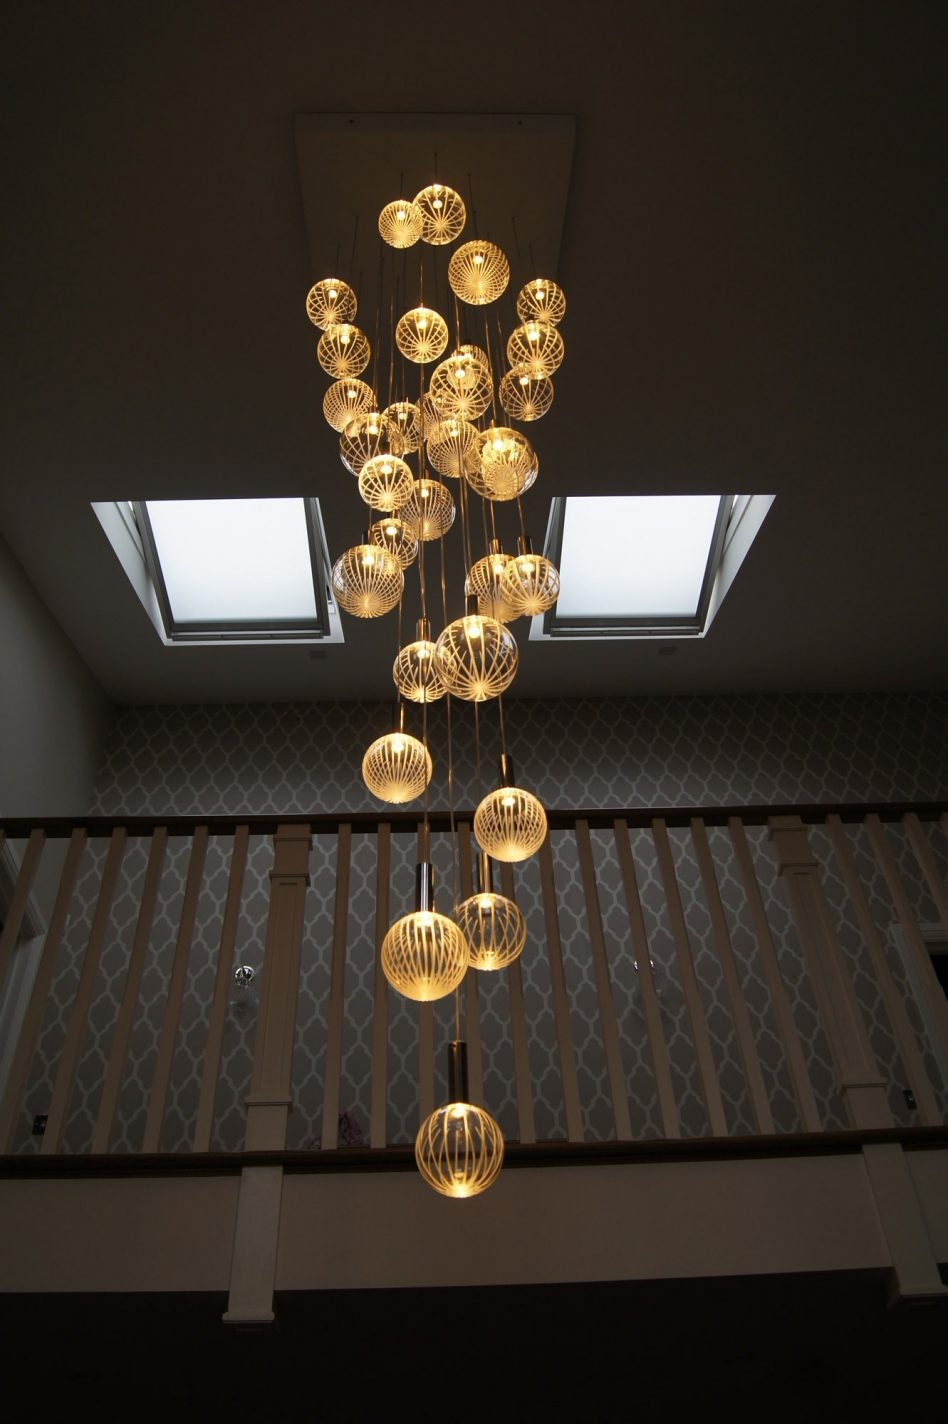 Large Contemporary Chandeliers Throughout Contemporary Large Chandeliers (#7 of 12)